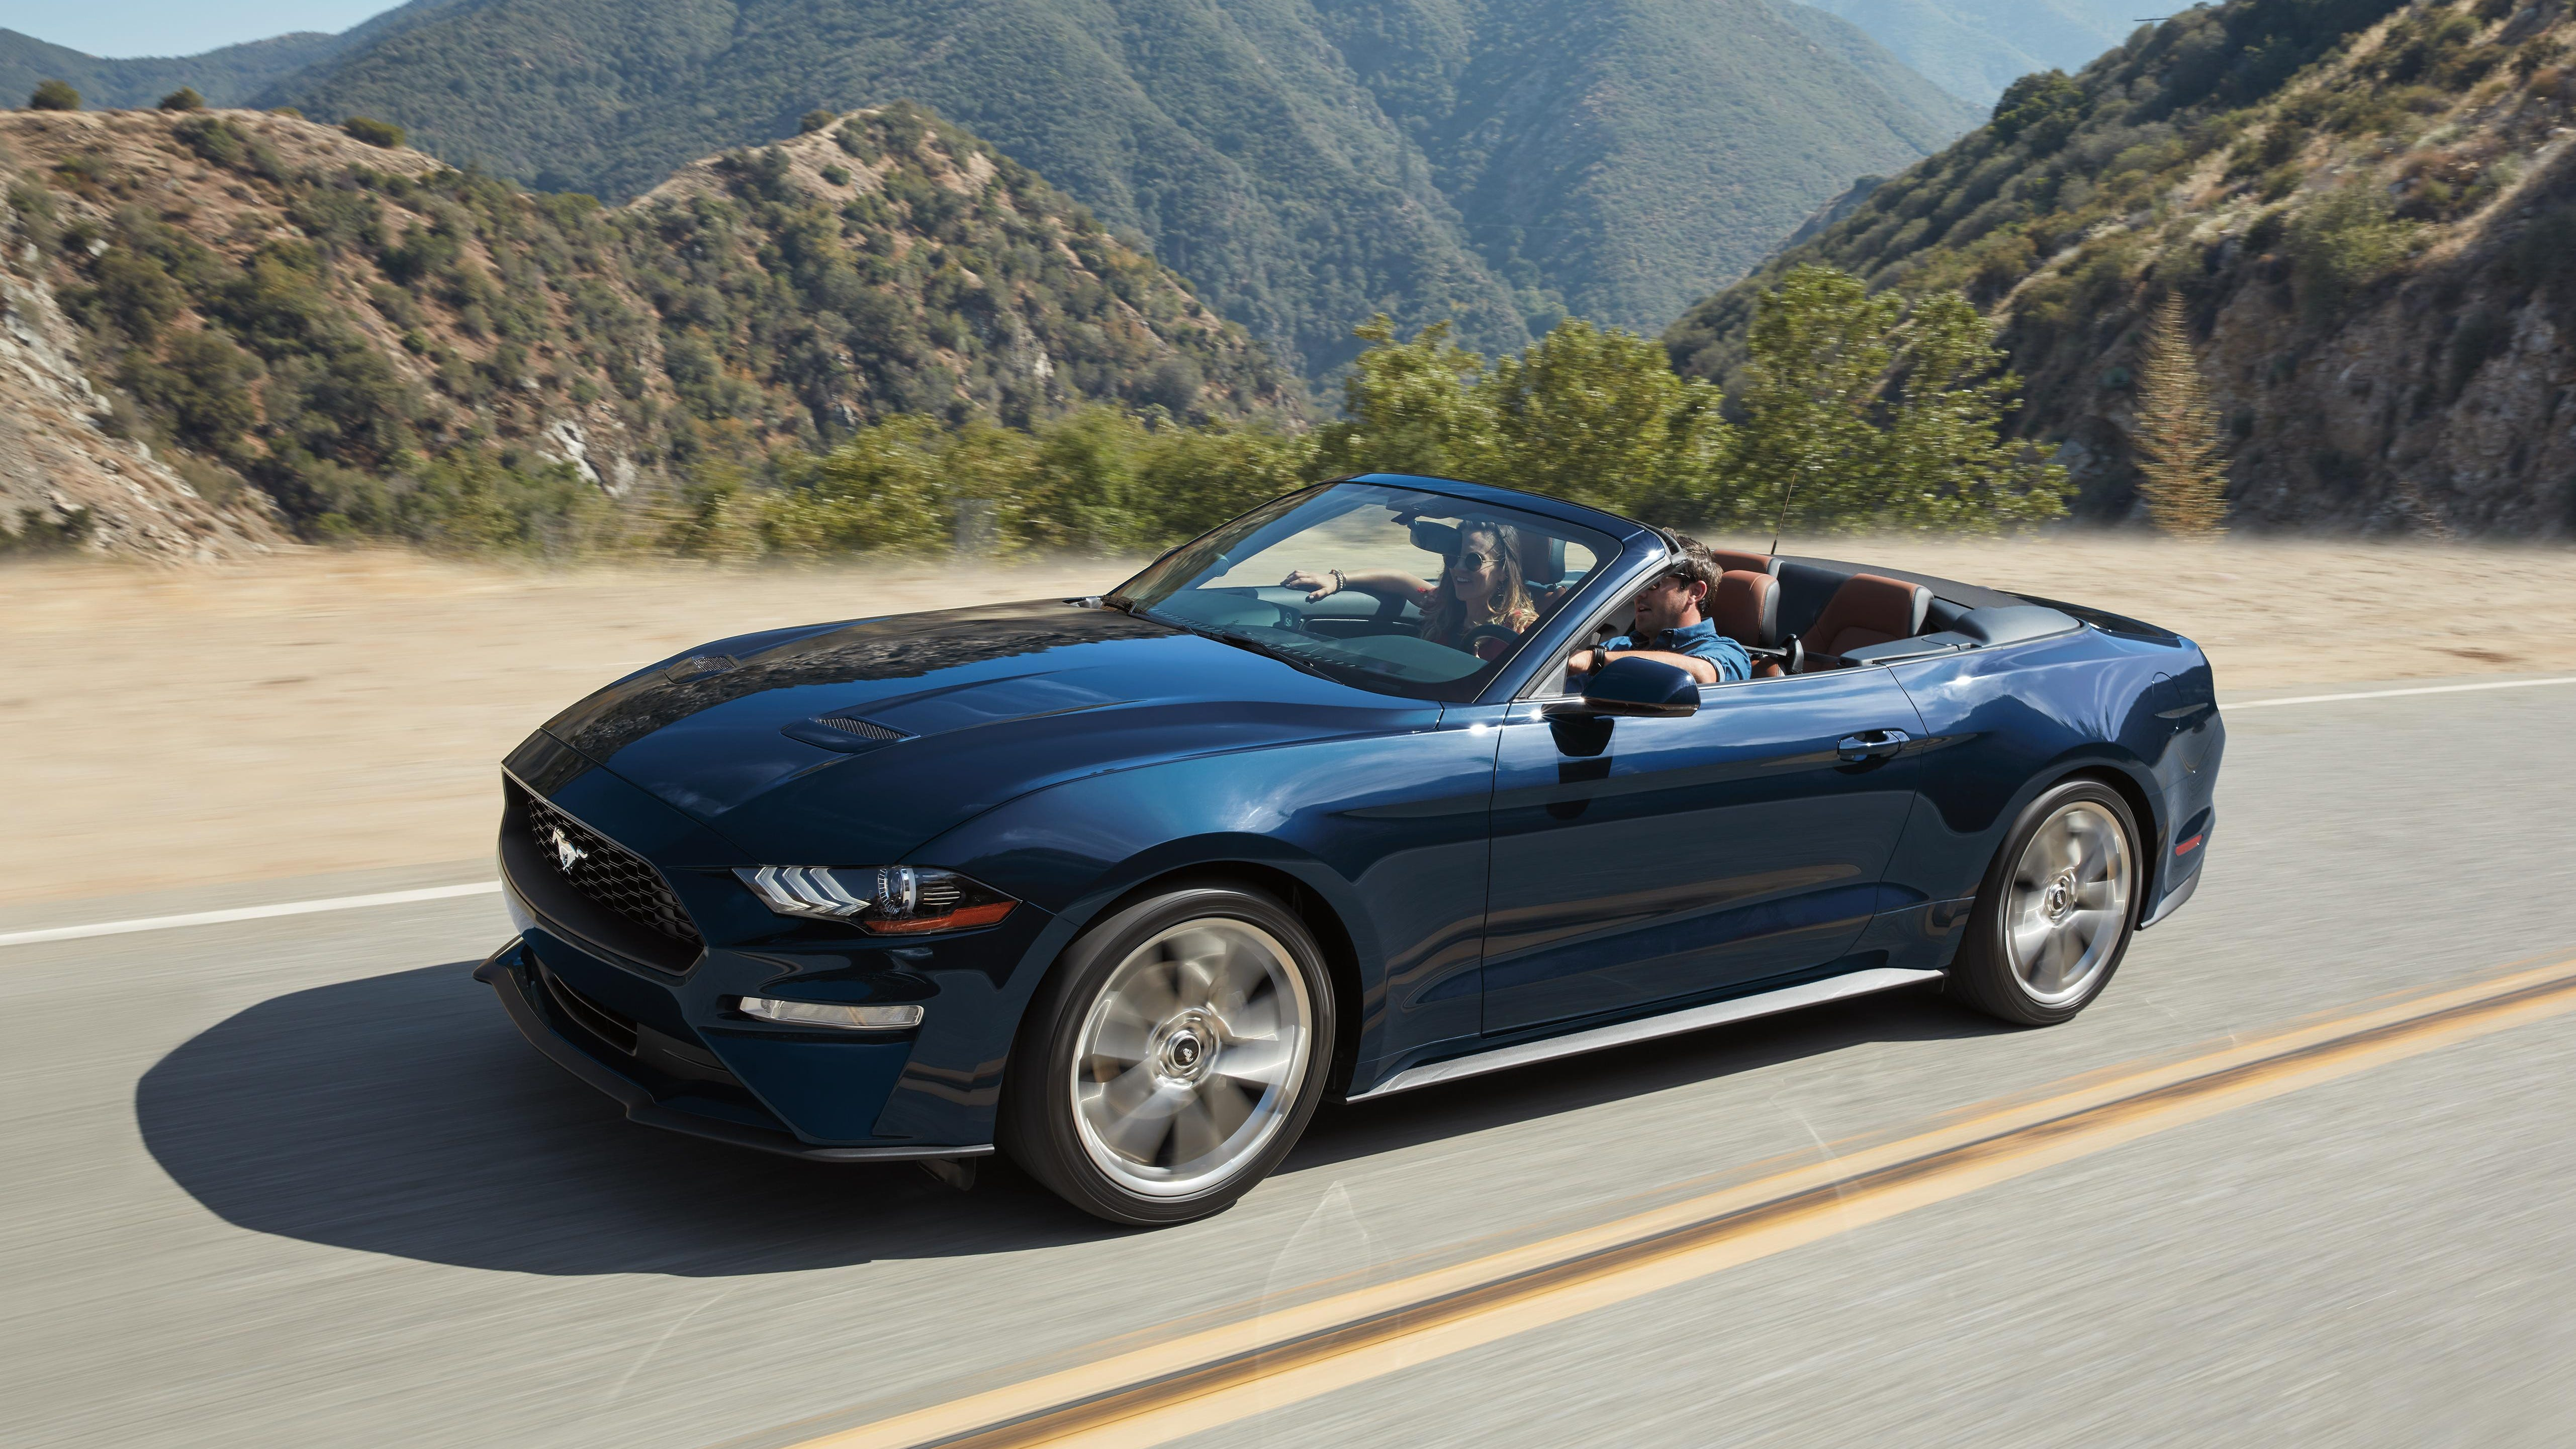 Review Mustang Ecoboost Convertible Is One Prize Pony